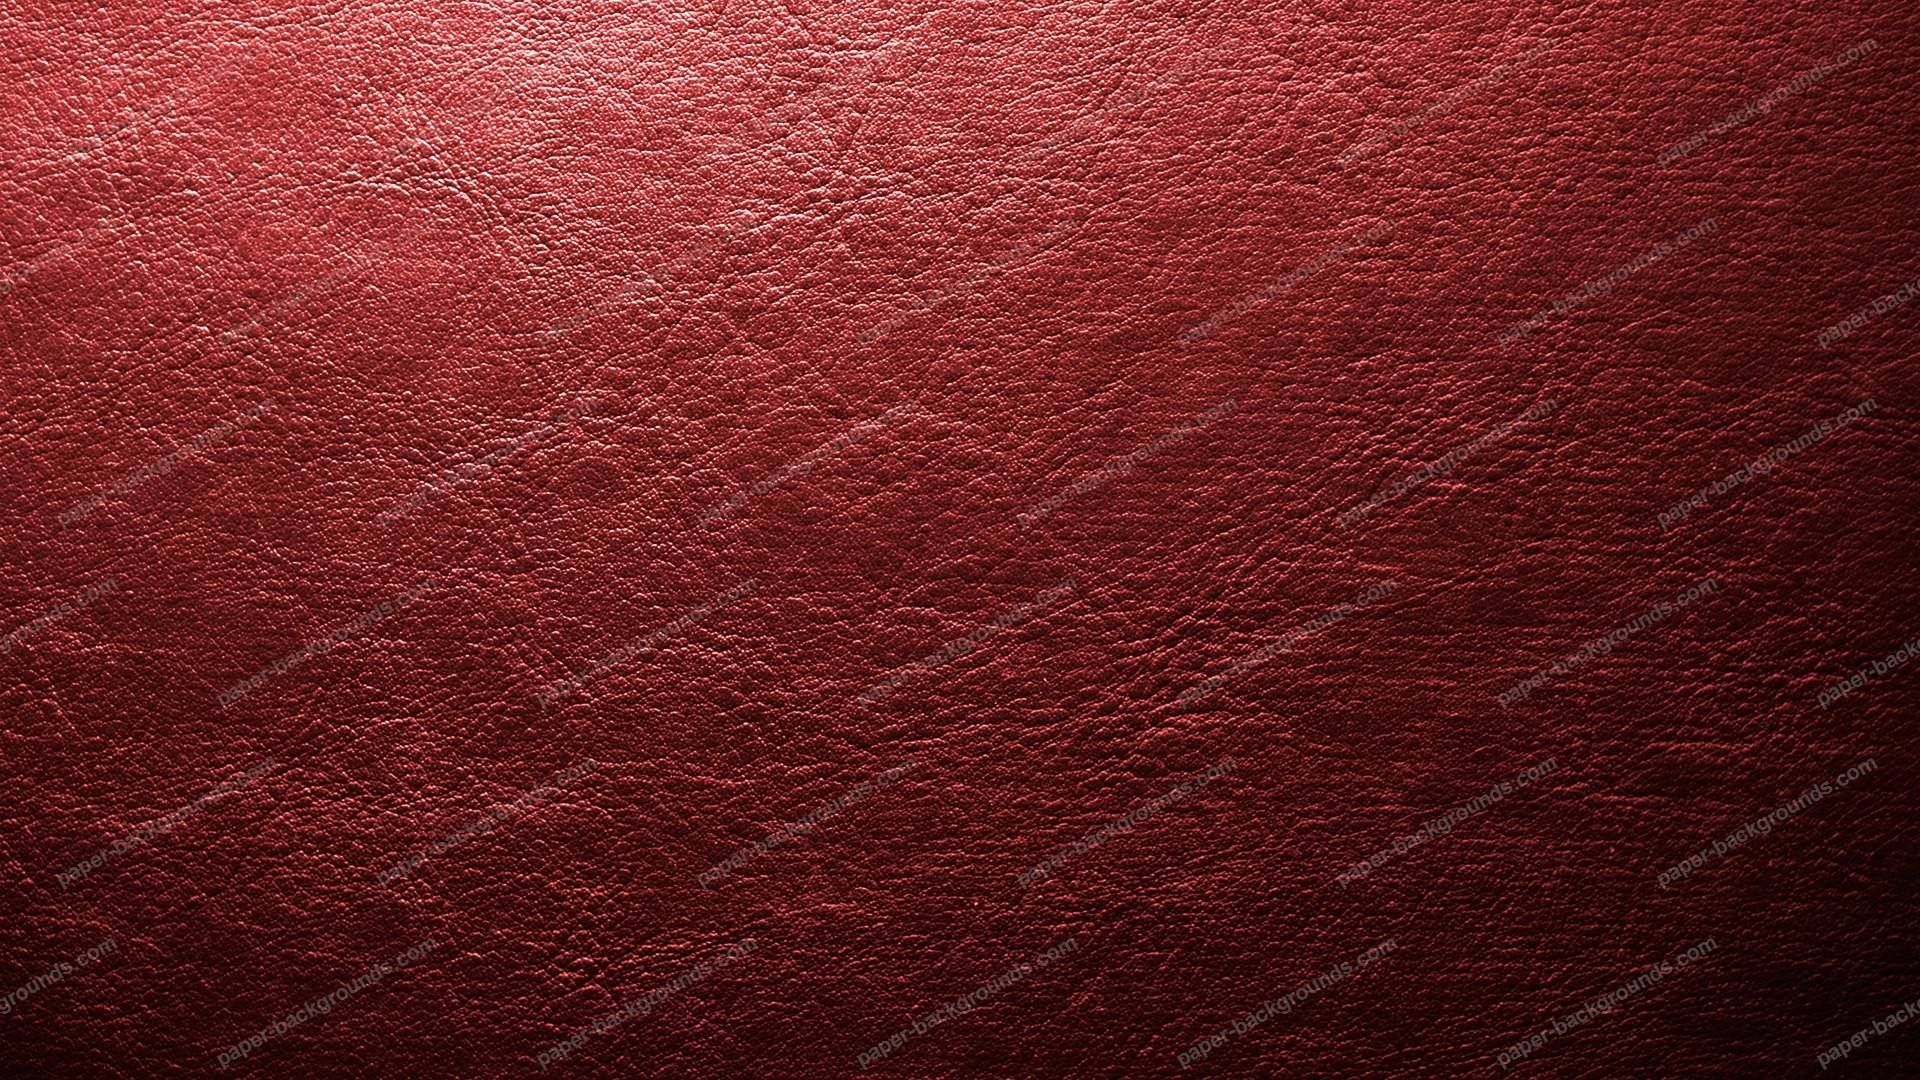 red leather wallpaper  55 images blue bell logo blue bull logistics suffolk